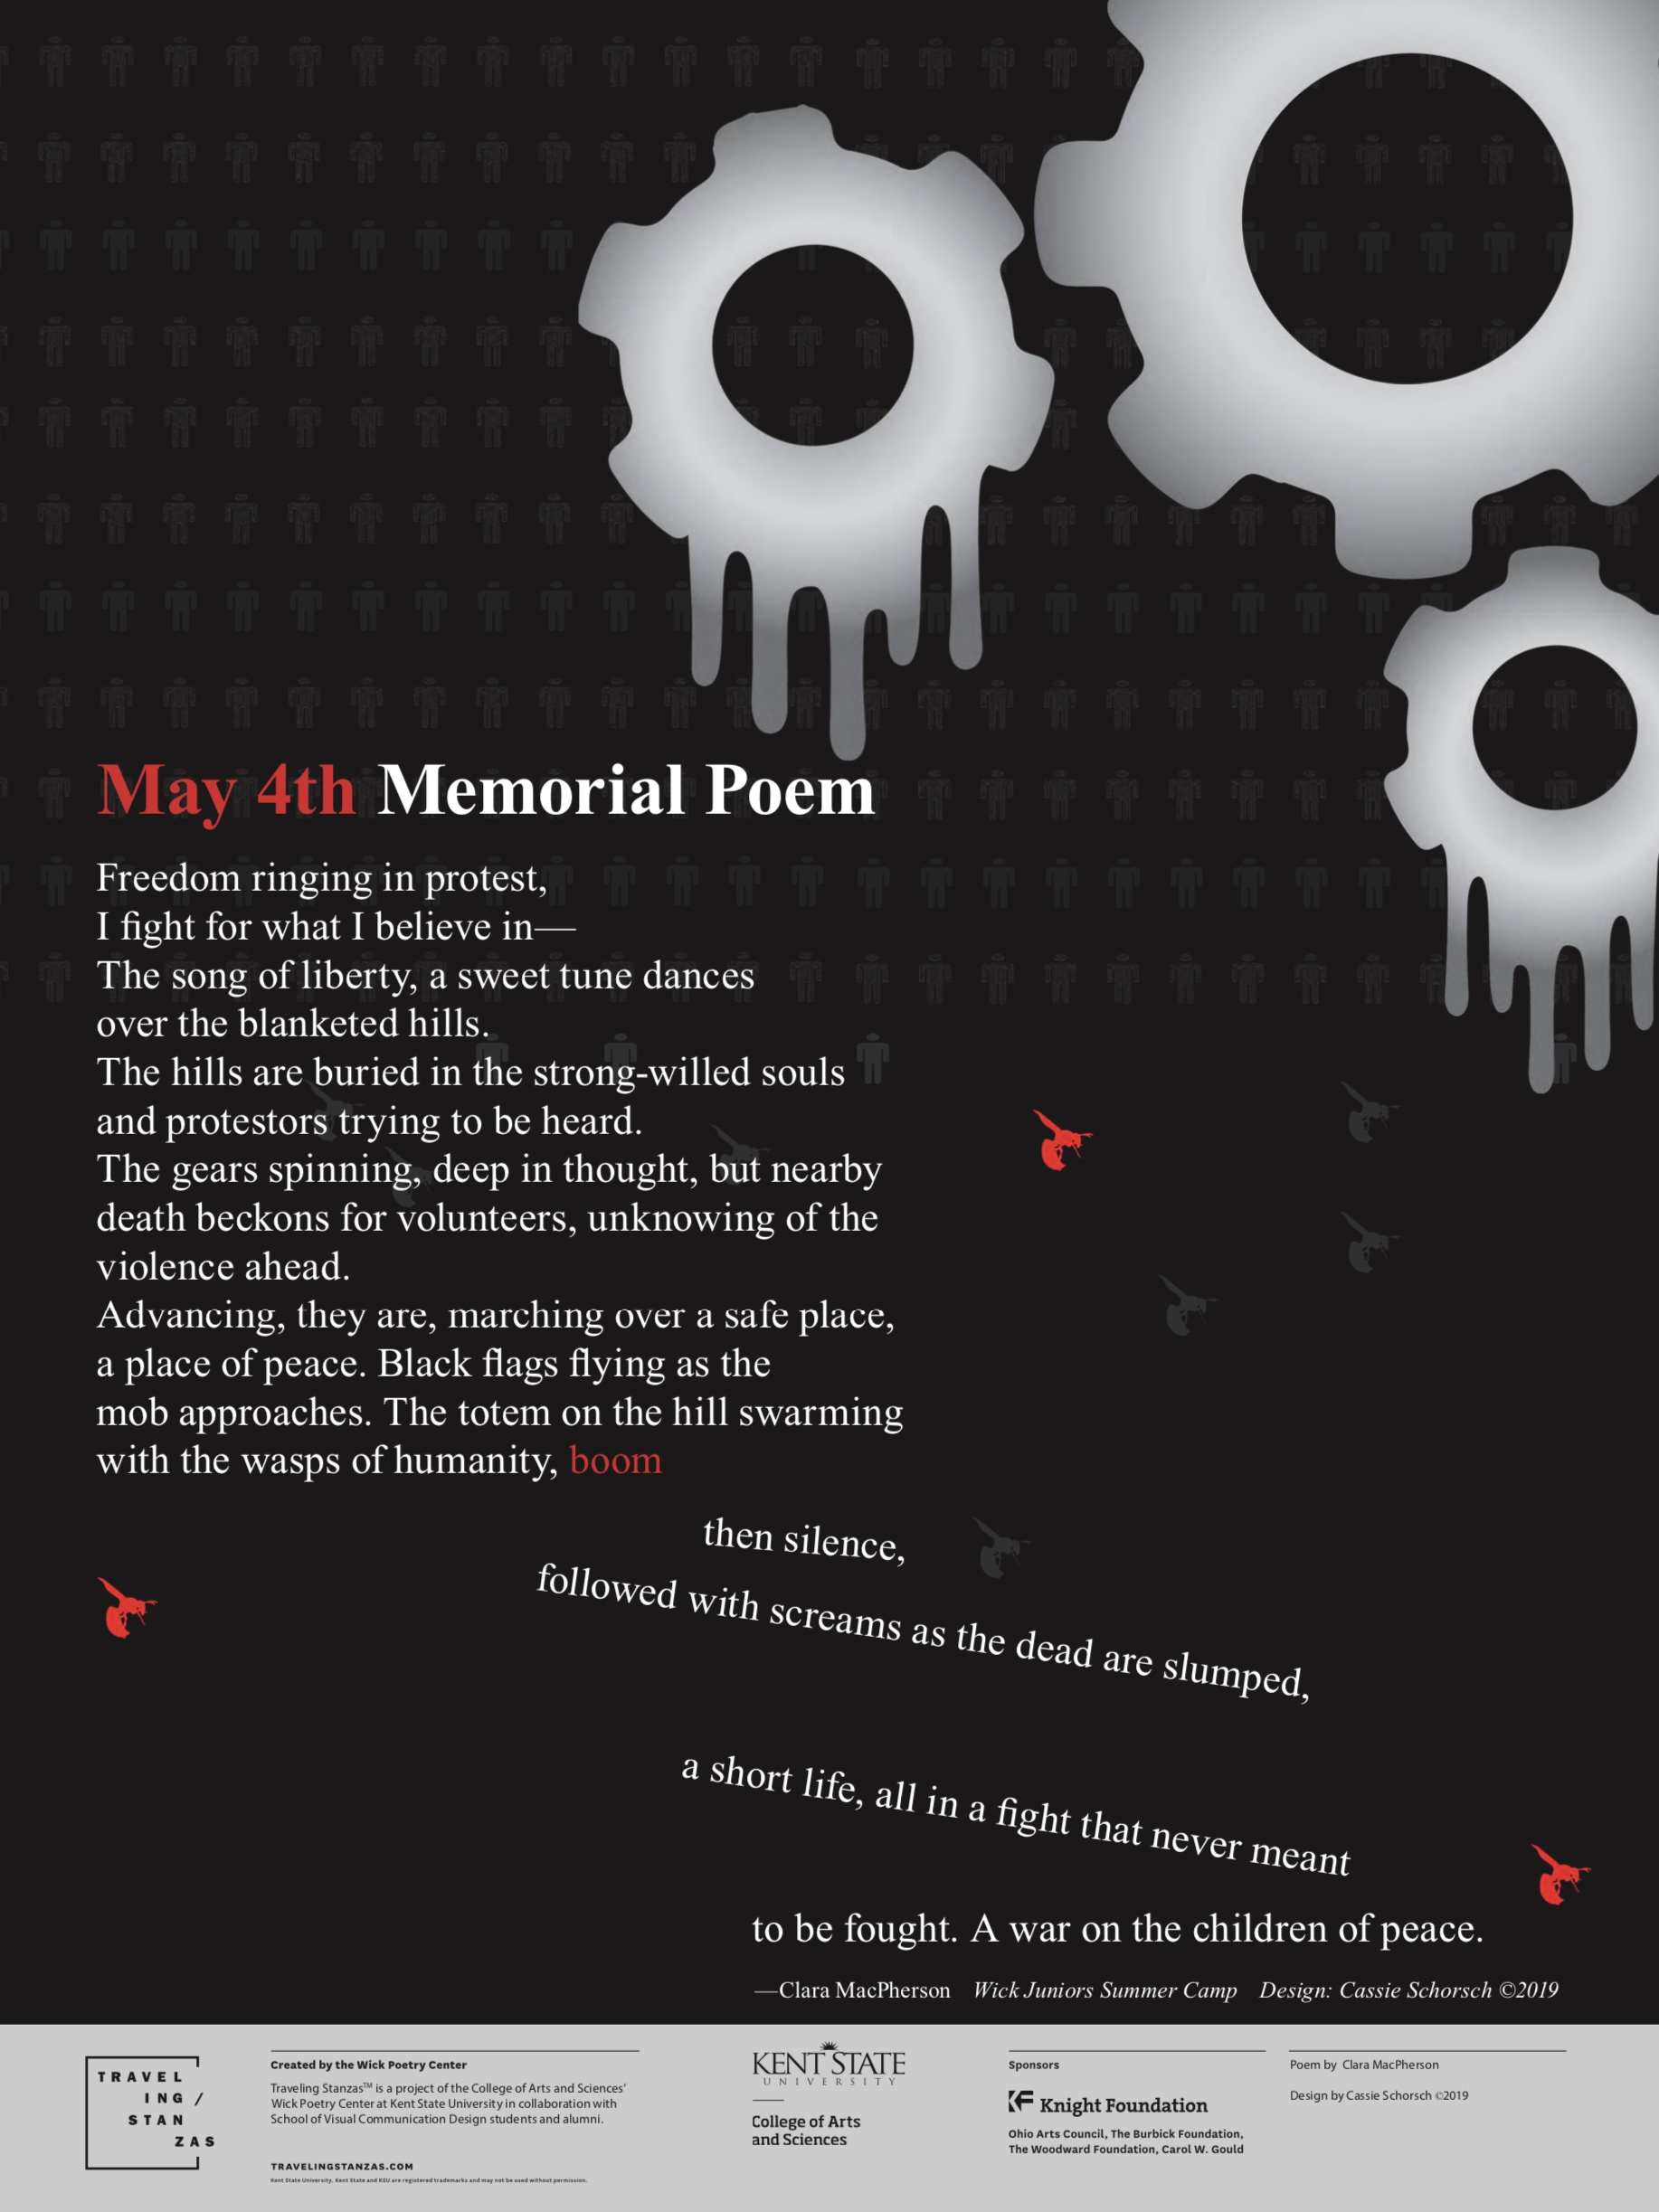 May 4th Memorial Poem